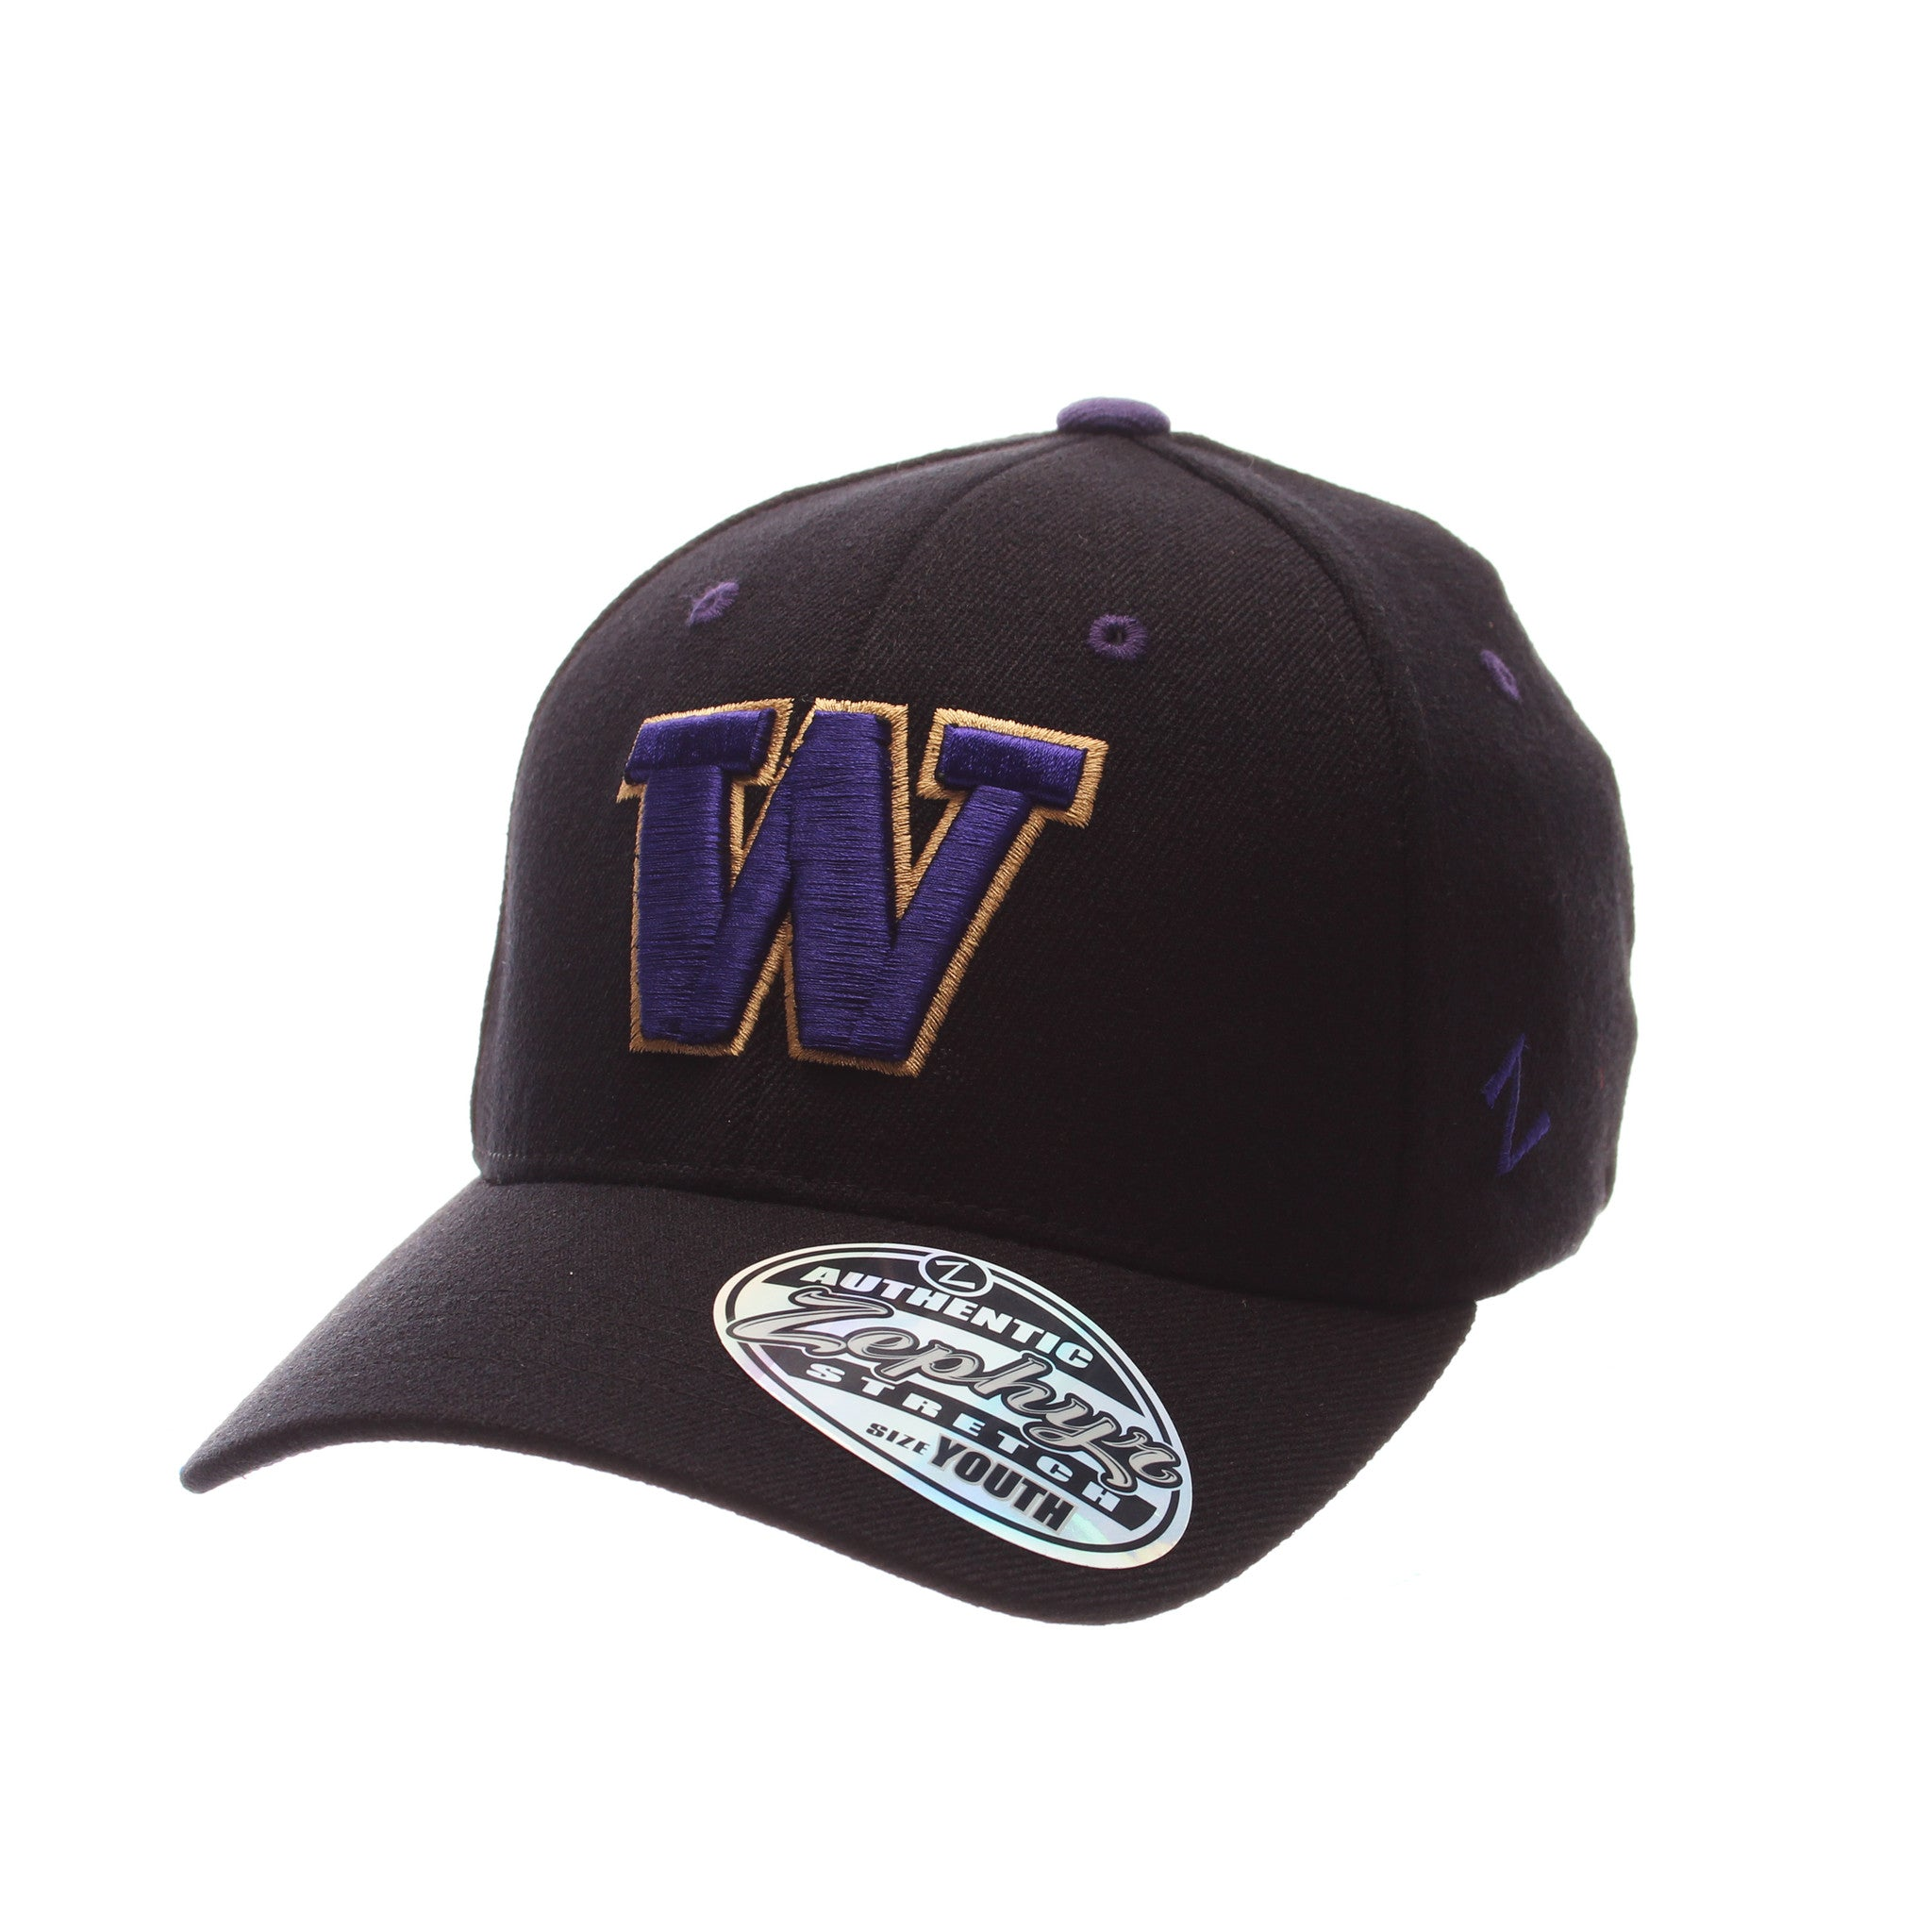 Washington ZH Youth/Jr - Ladies (W) Black Zwool Stretch Fit hats by Zephyr